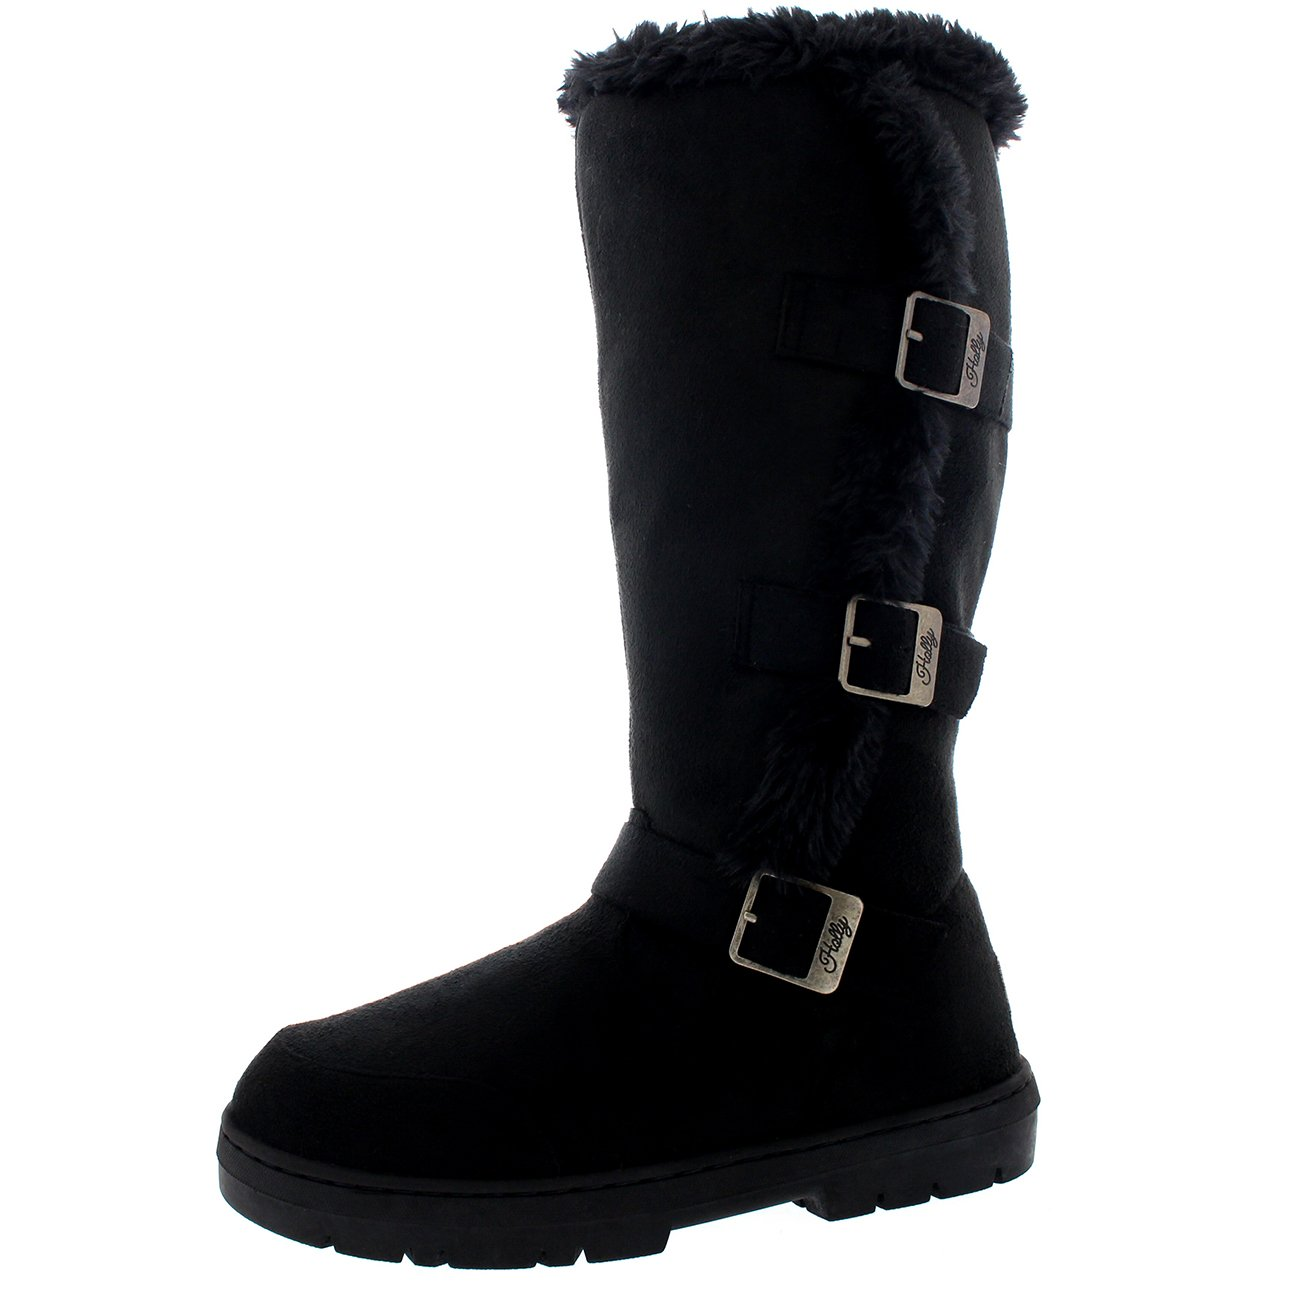 Holly Womens Slouch Snow Winter Waterproof Long Zip Knee High Boots - Black - US8/EU39 - BA0470